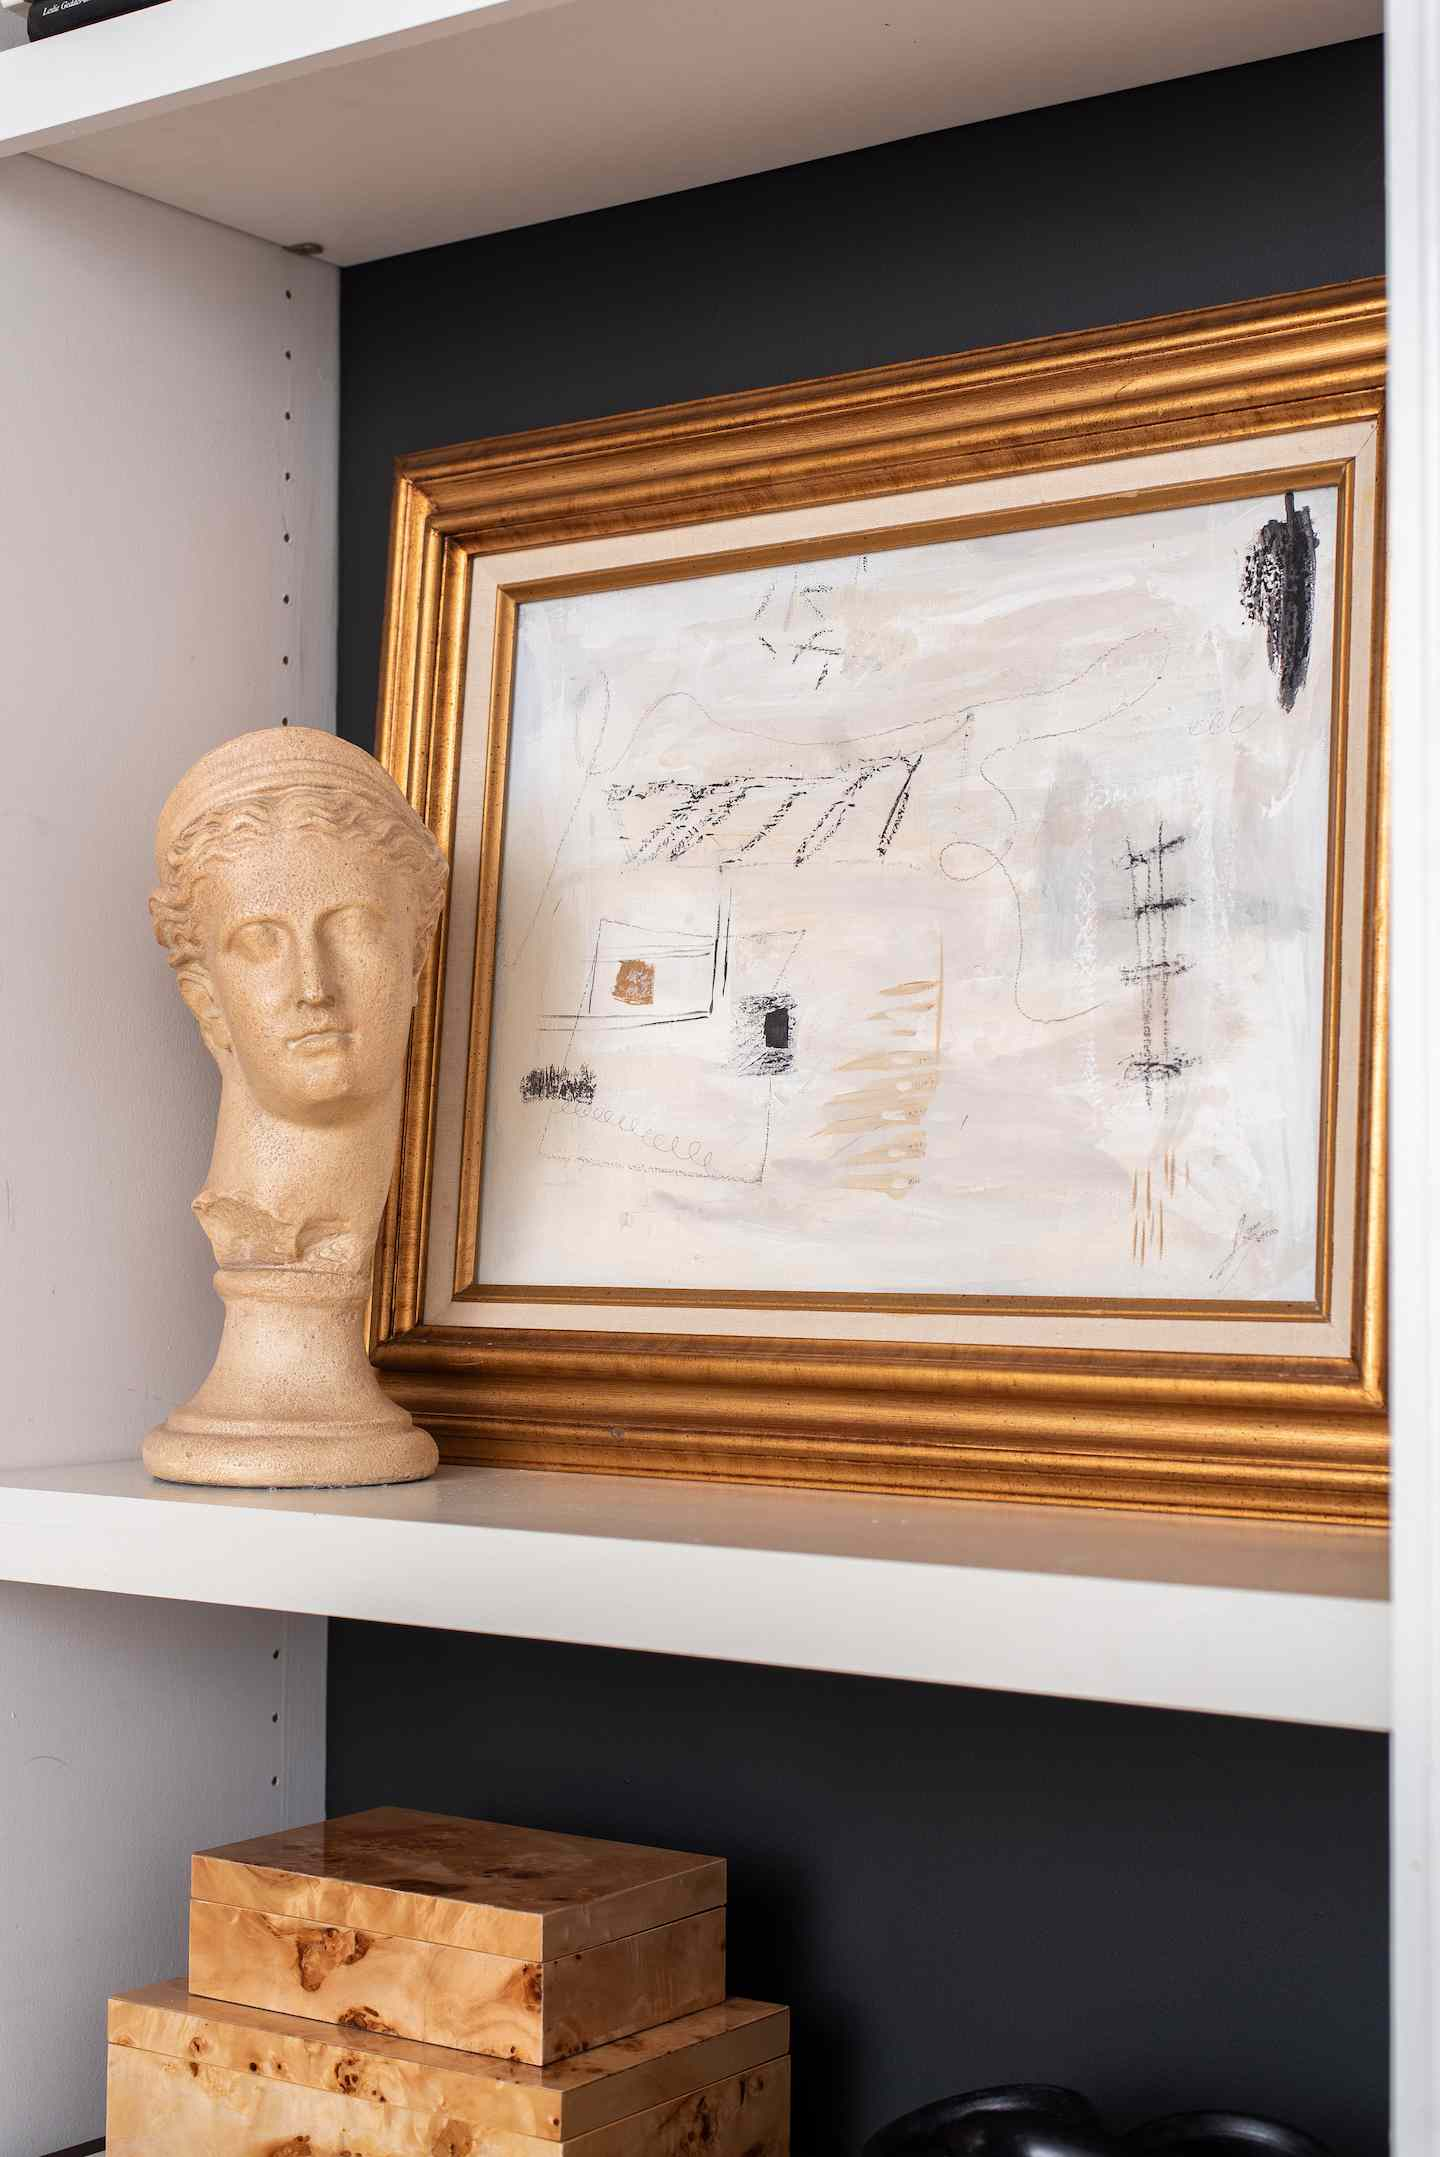 Art in gold frame next to small bust statue.